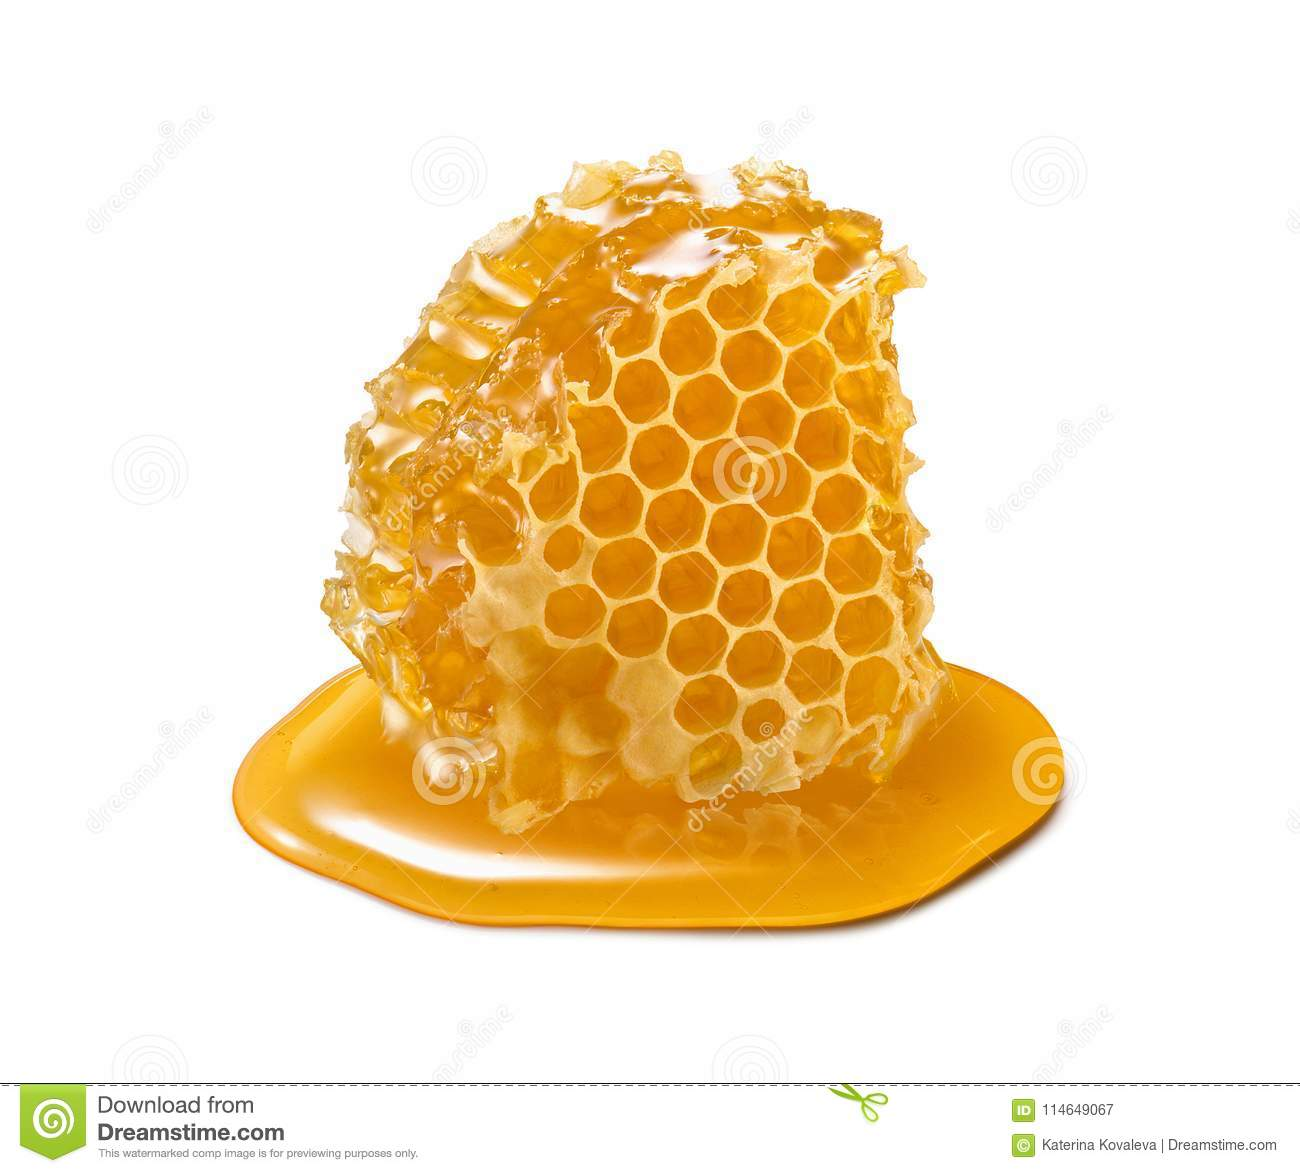 Honeycomb piece. Honey slice isolated on white background